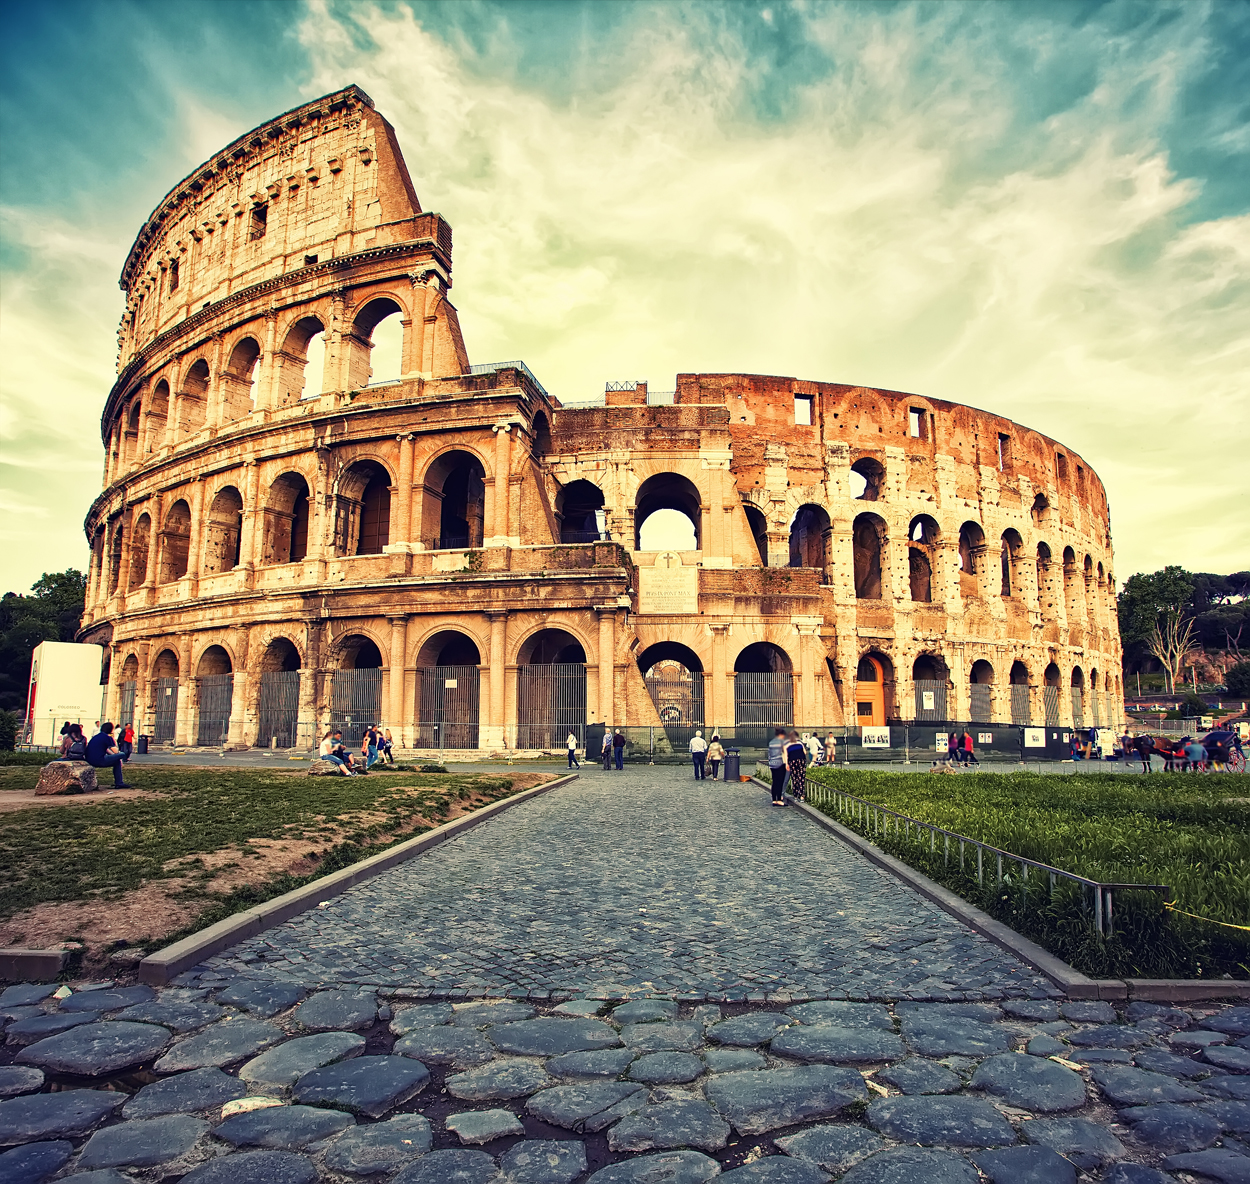 Roman Vacations: Island Trader Vacations Reviews 10 Top Attractions In Rome